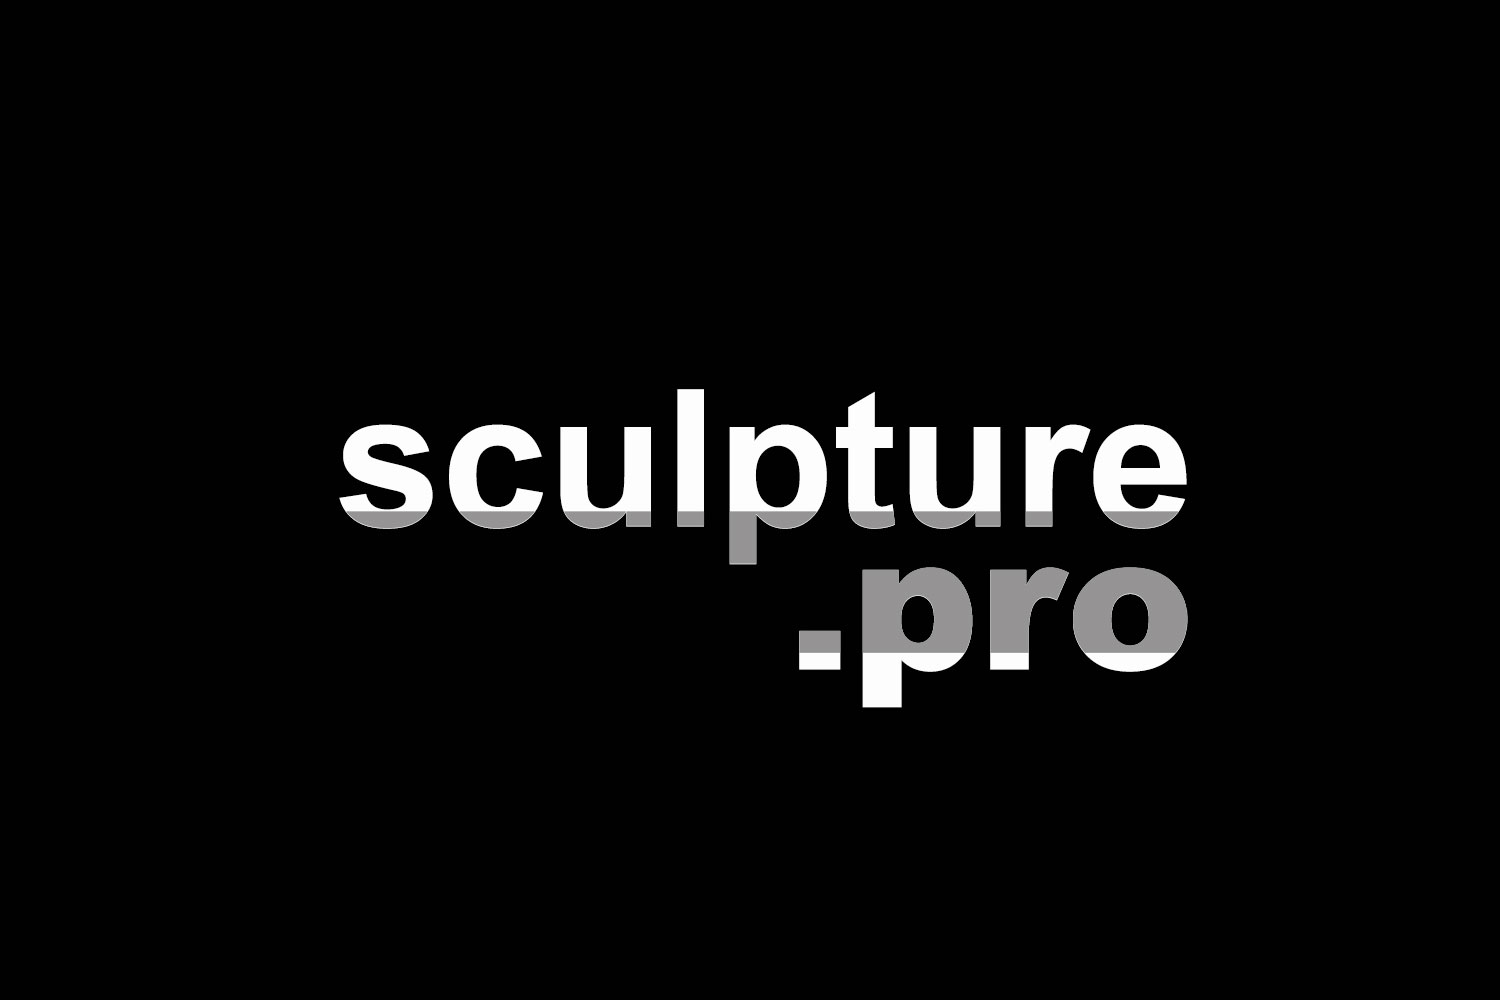 sculpture.pro-contemporary-fine-art-antique-statue-arts-design-form--black-white